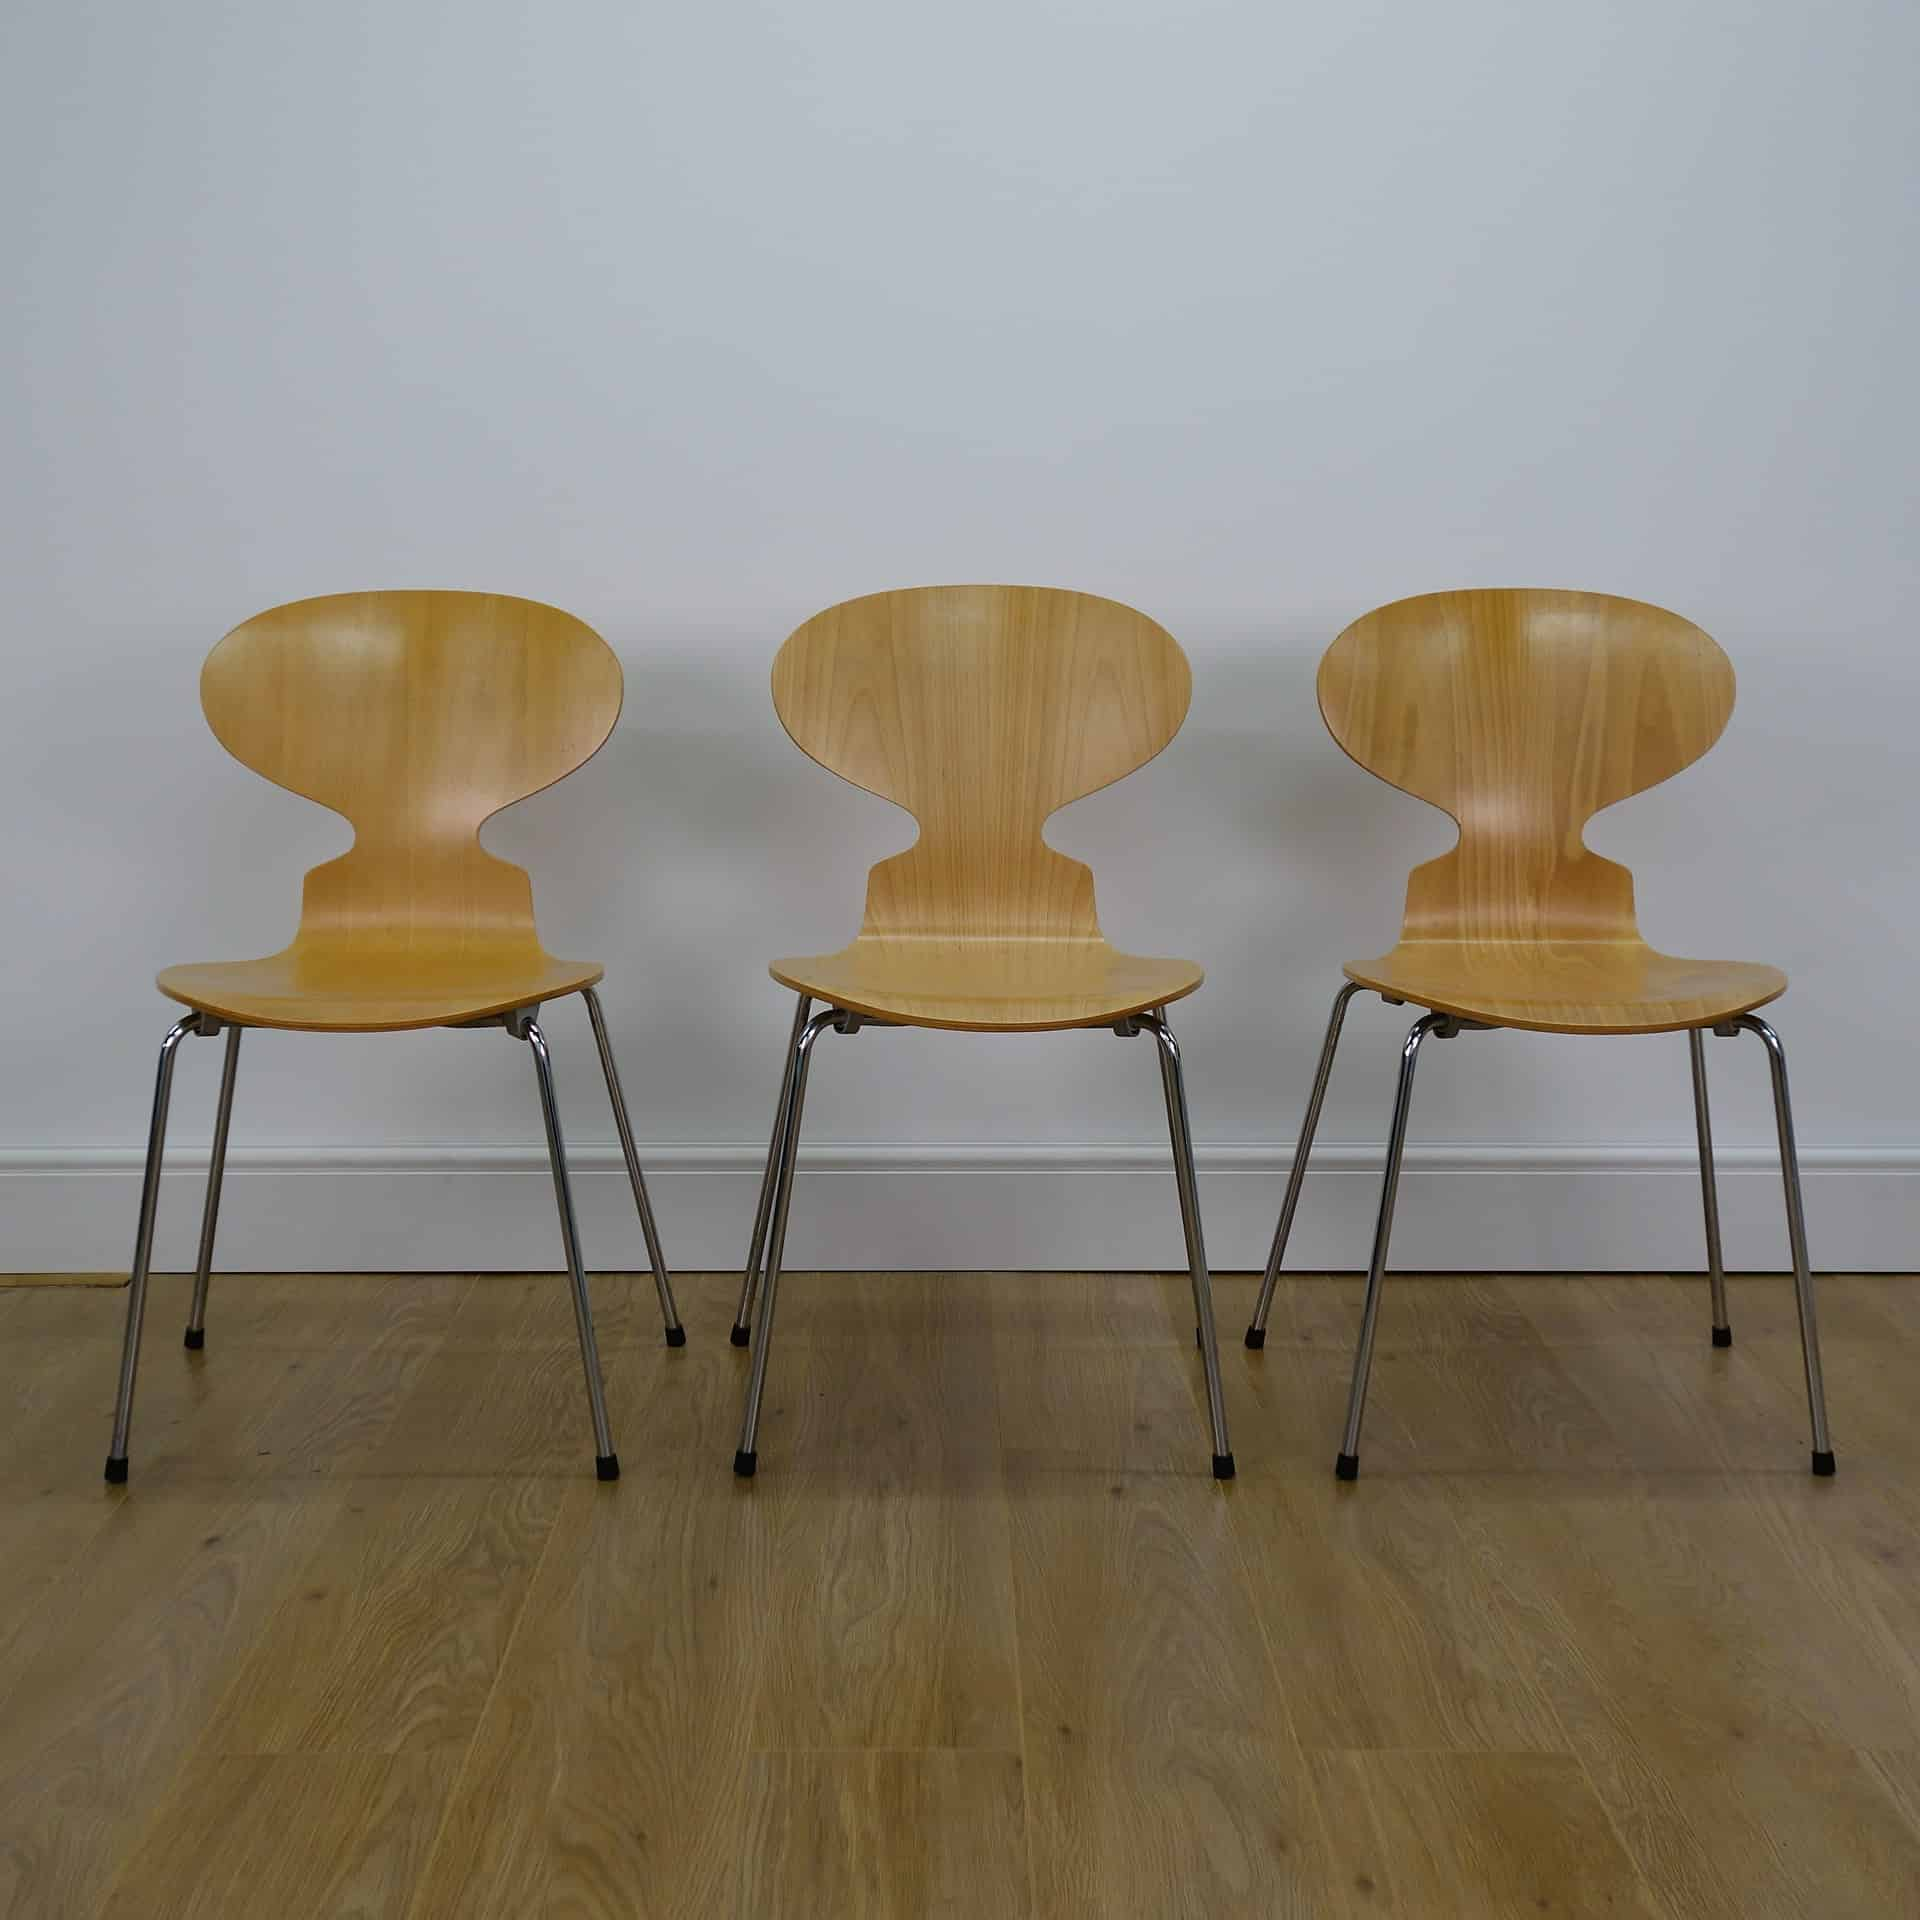 Beech ant chairs by Arne jacobsen